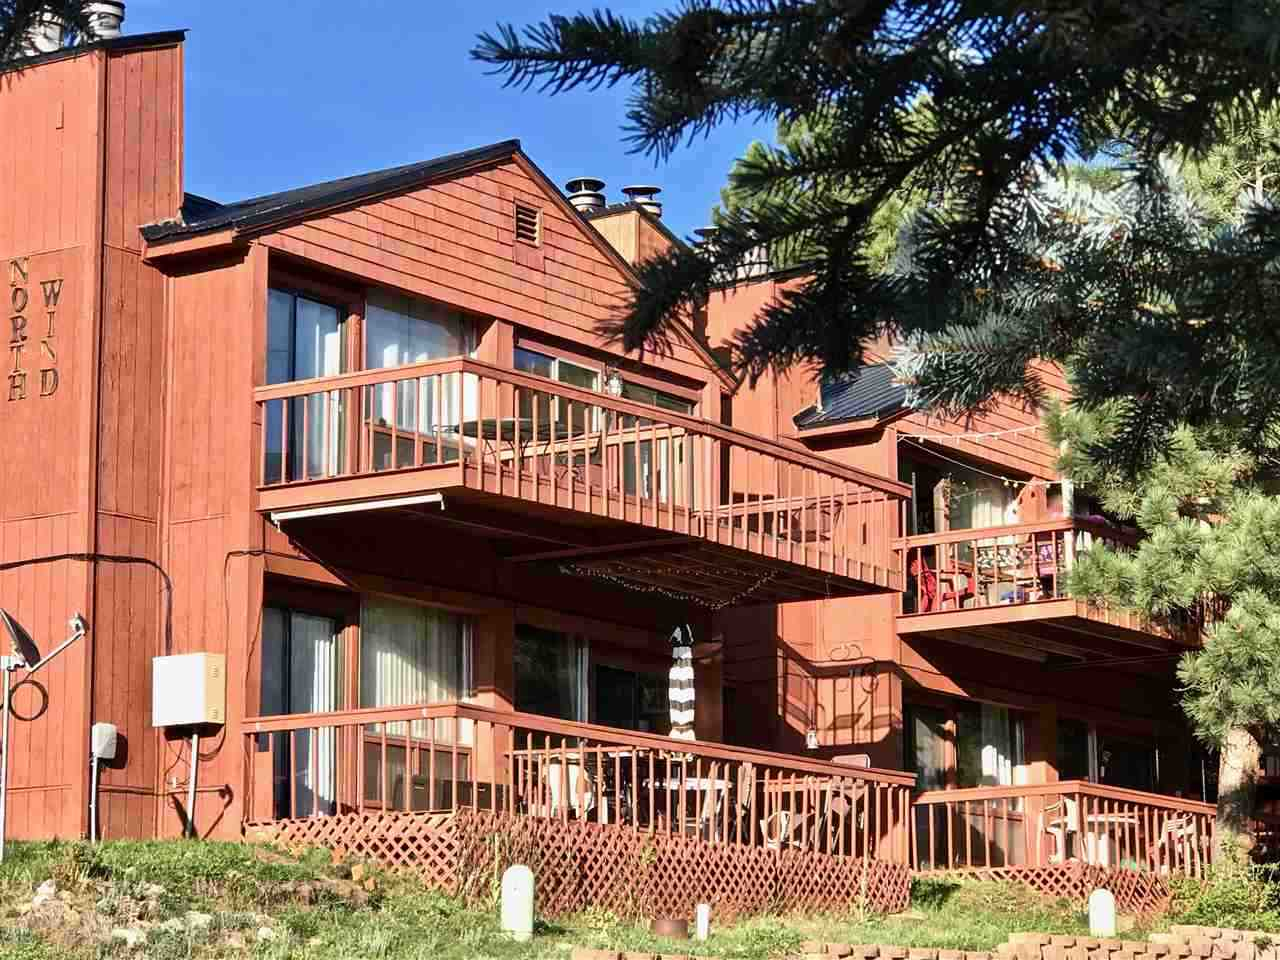 35 N Angel Fire Rd, Angel Fire, NM 87710